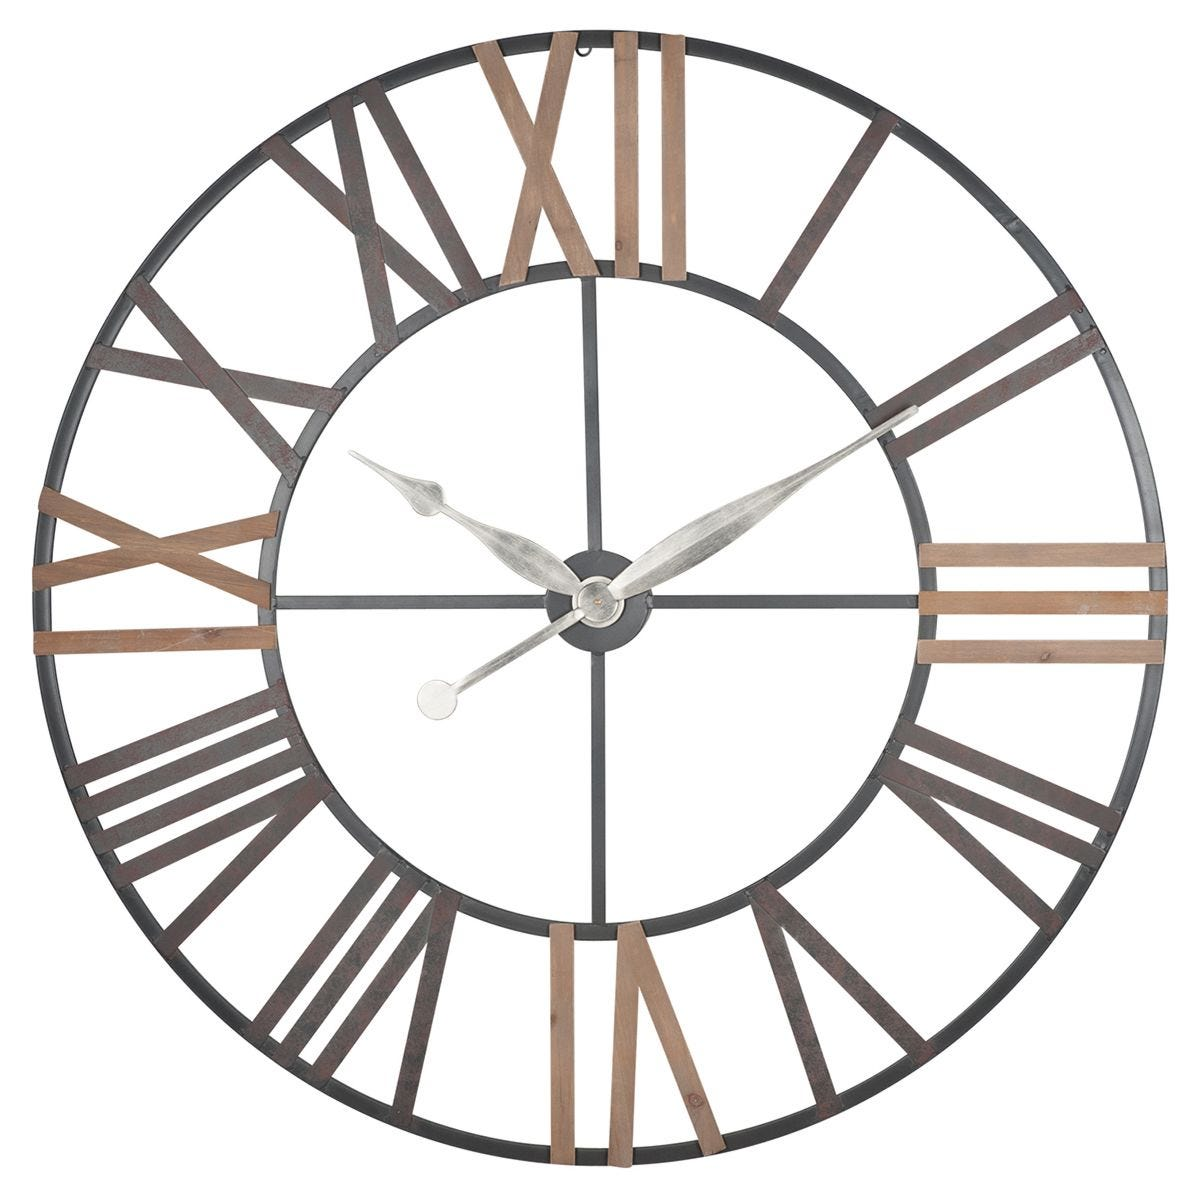 Celestial Antique Grey Metal & Wood Round Wall Clock